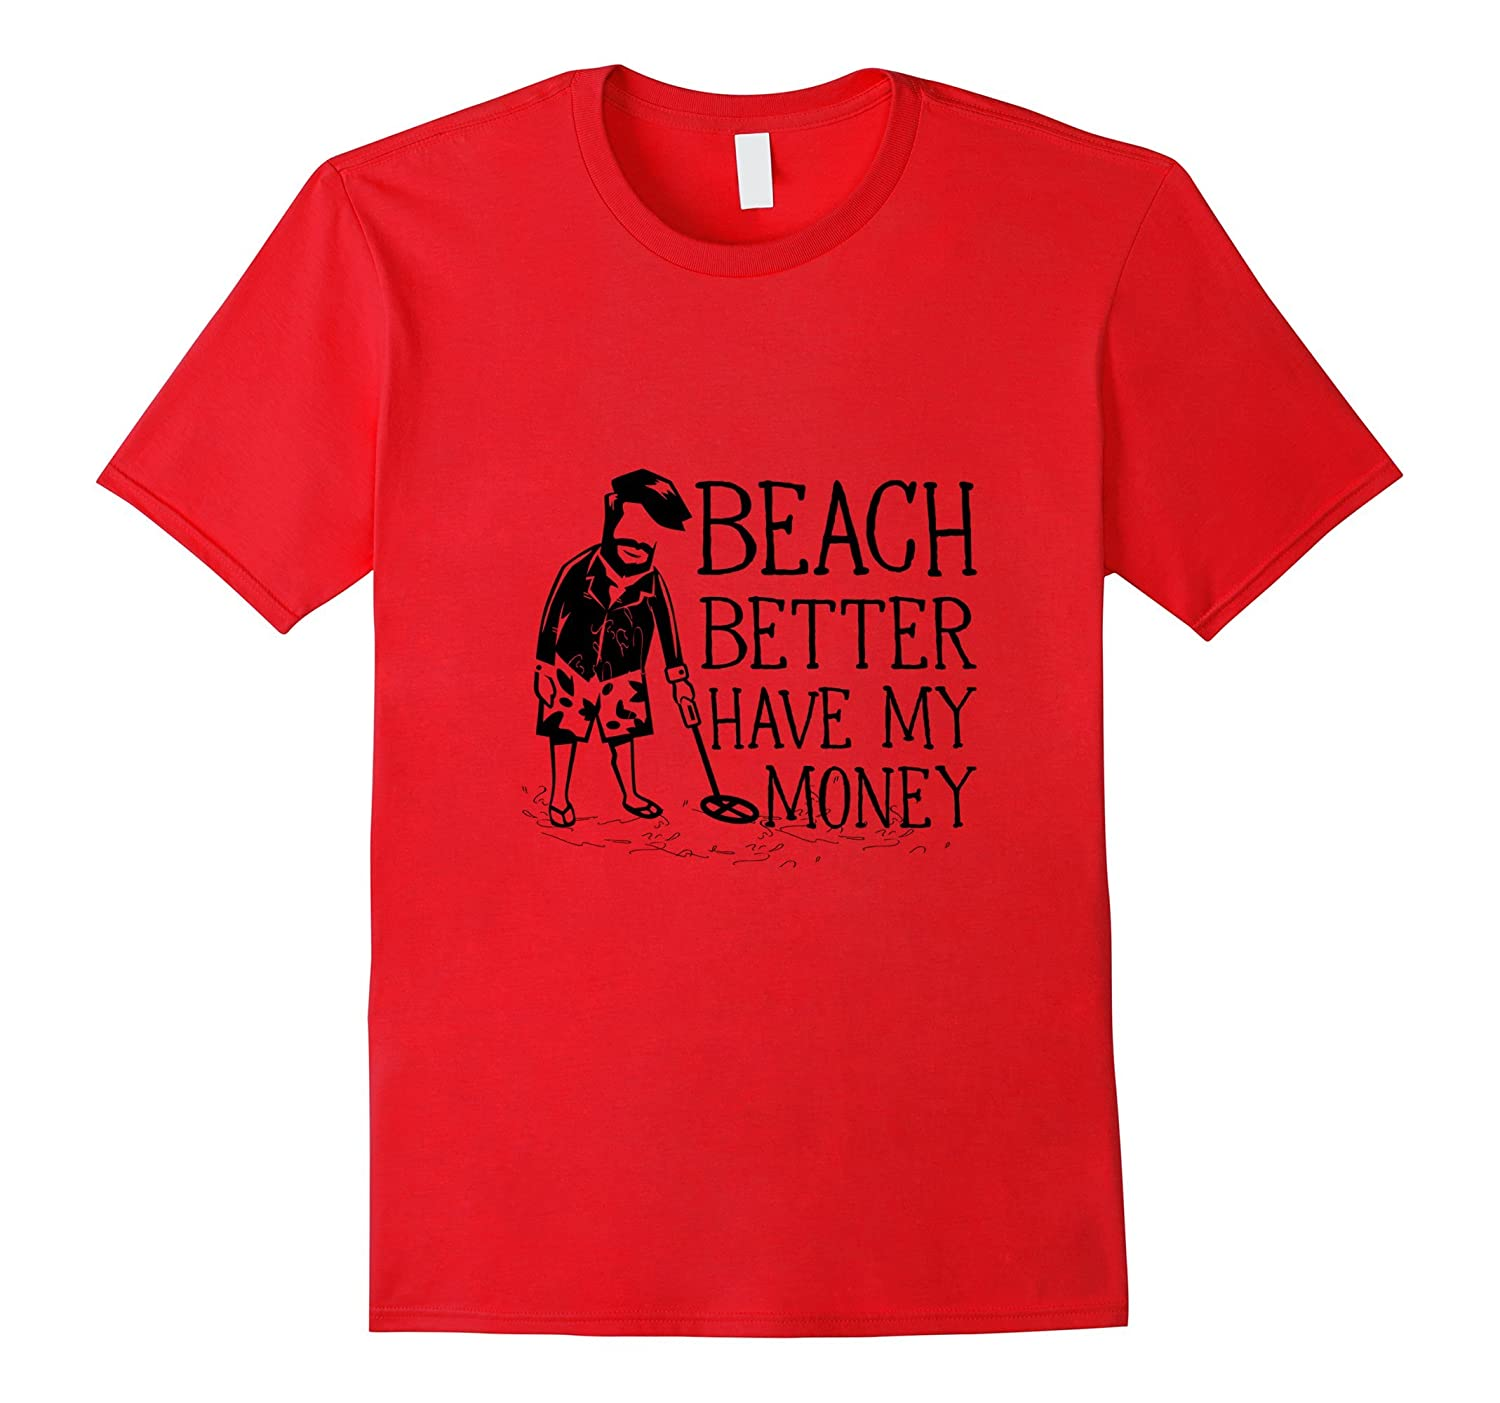 Beach Better Have My Money - Funny Beach Mens T-Shirt-Vaci